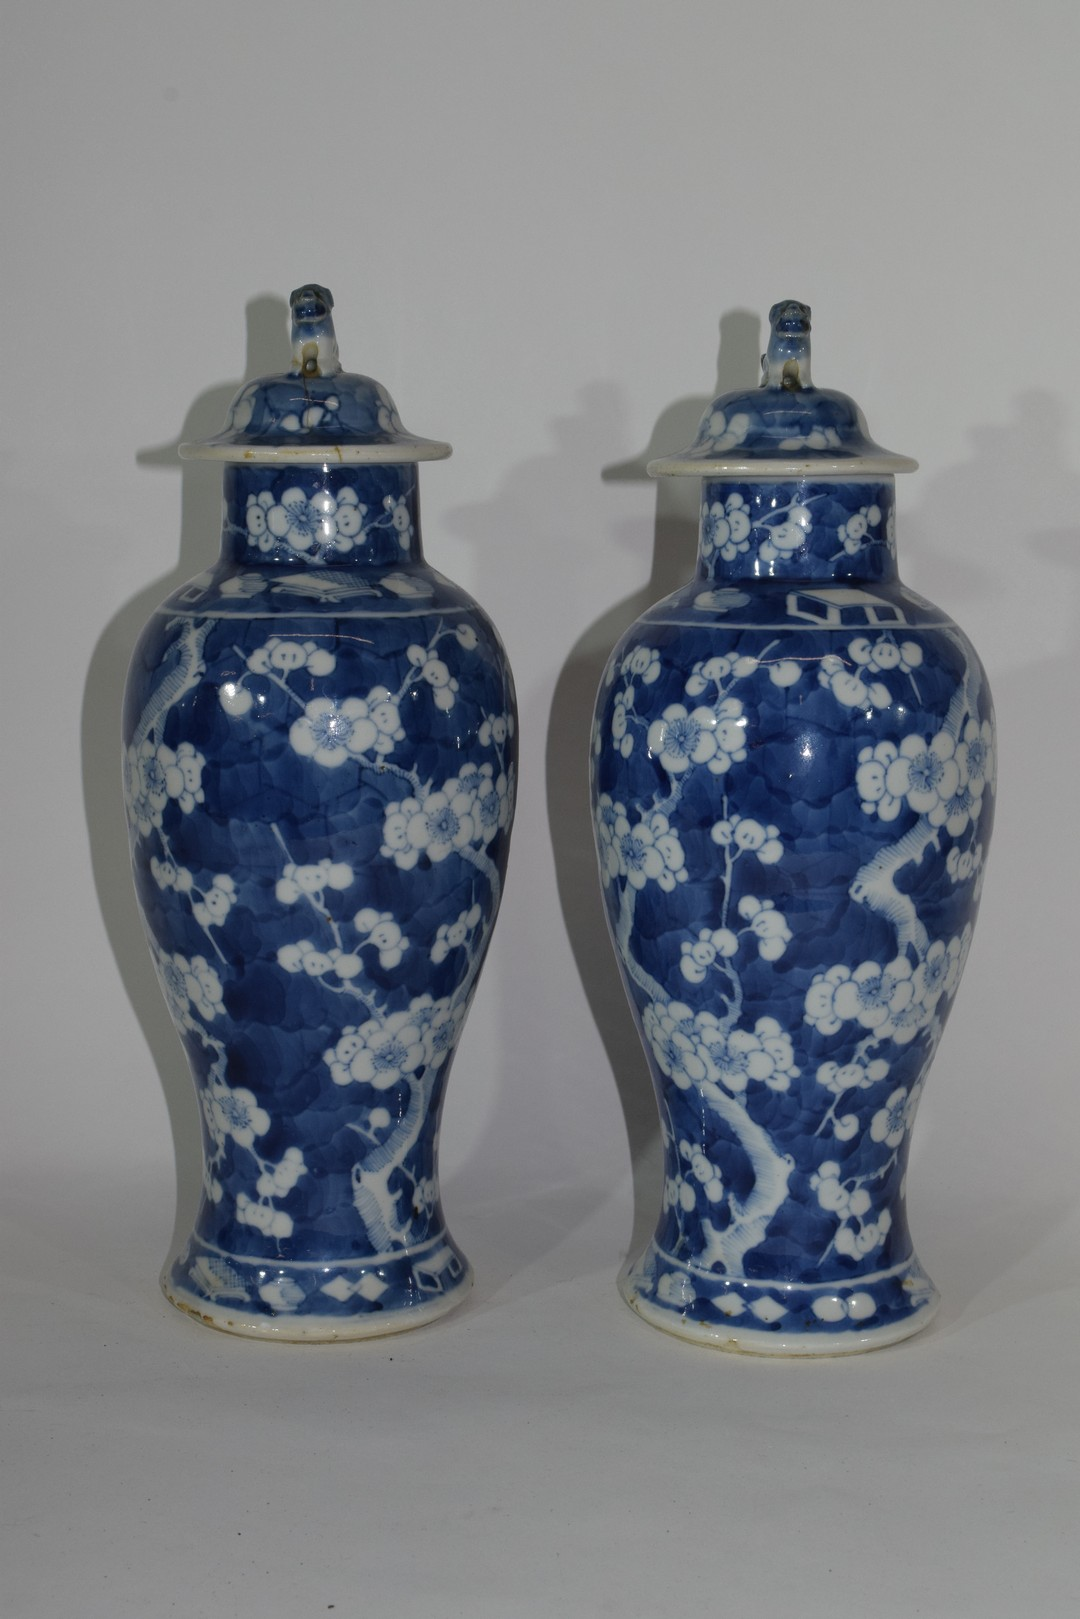 Pair of 19th century Chinese porcelain vases and covers - Image 4 of 9